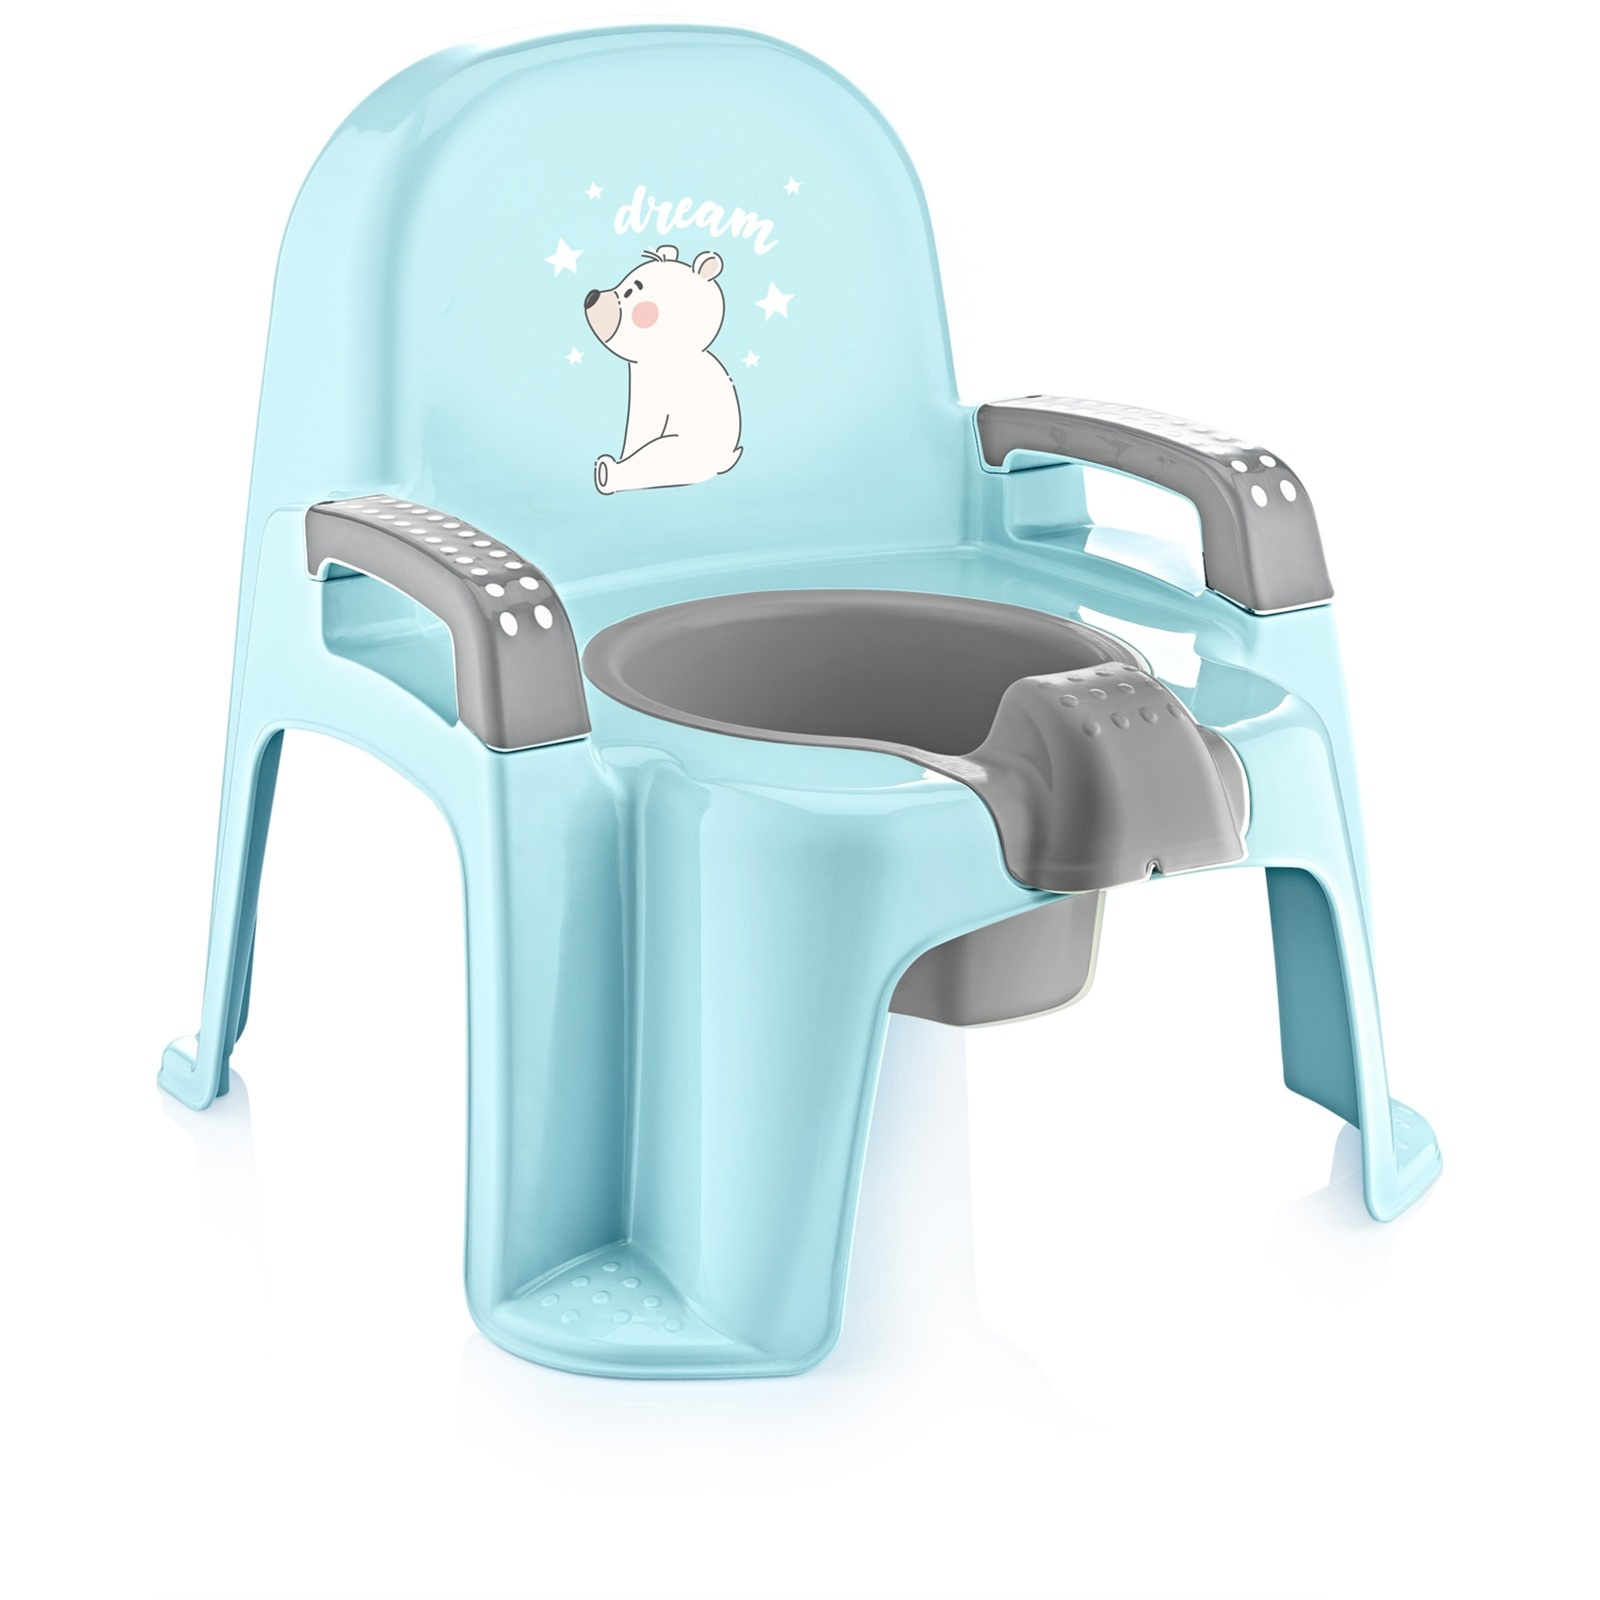 Ebebek Babyjem Flaky Training Practical Baby Seat Potty